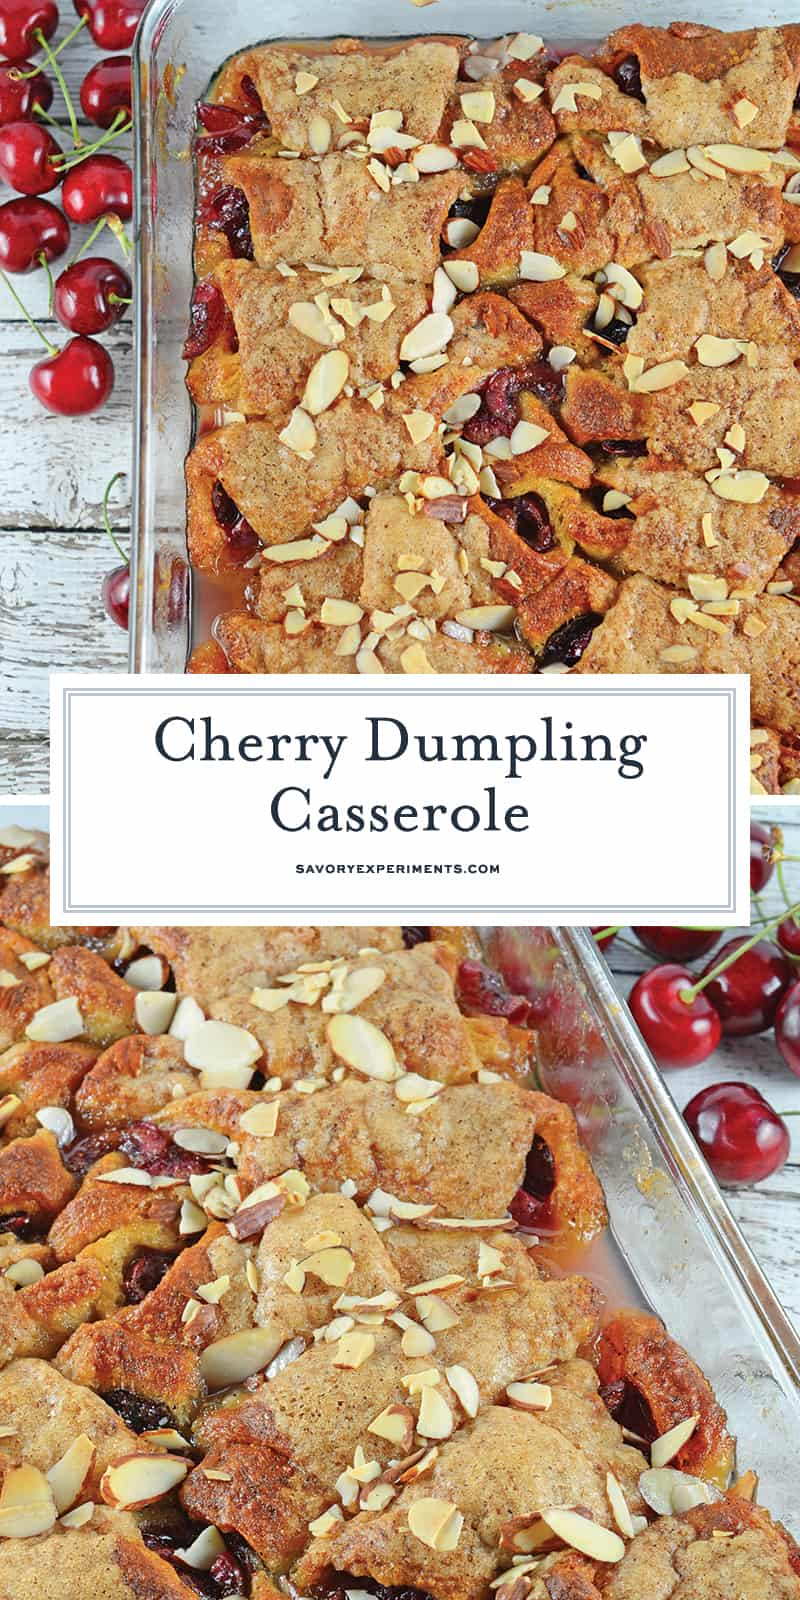 Cherry Dumpling Casserole is a great recipe that use cherries in a tasty and easy dessert! Easy to make and delicious to eat, what could be better? #fruitdumplings #crescentrolldumplings www.savoryexperiments.com